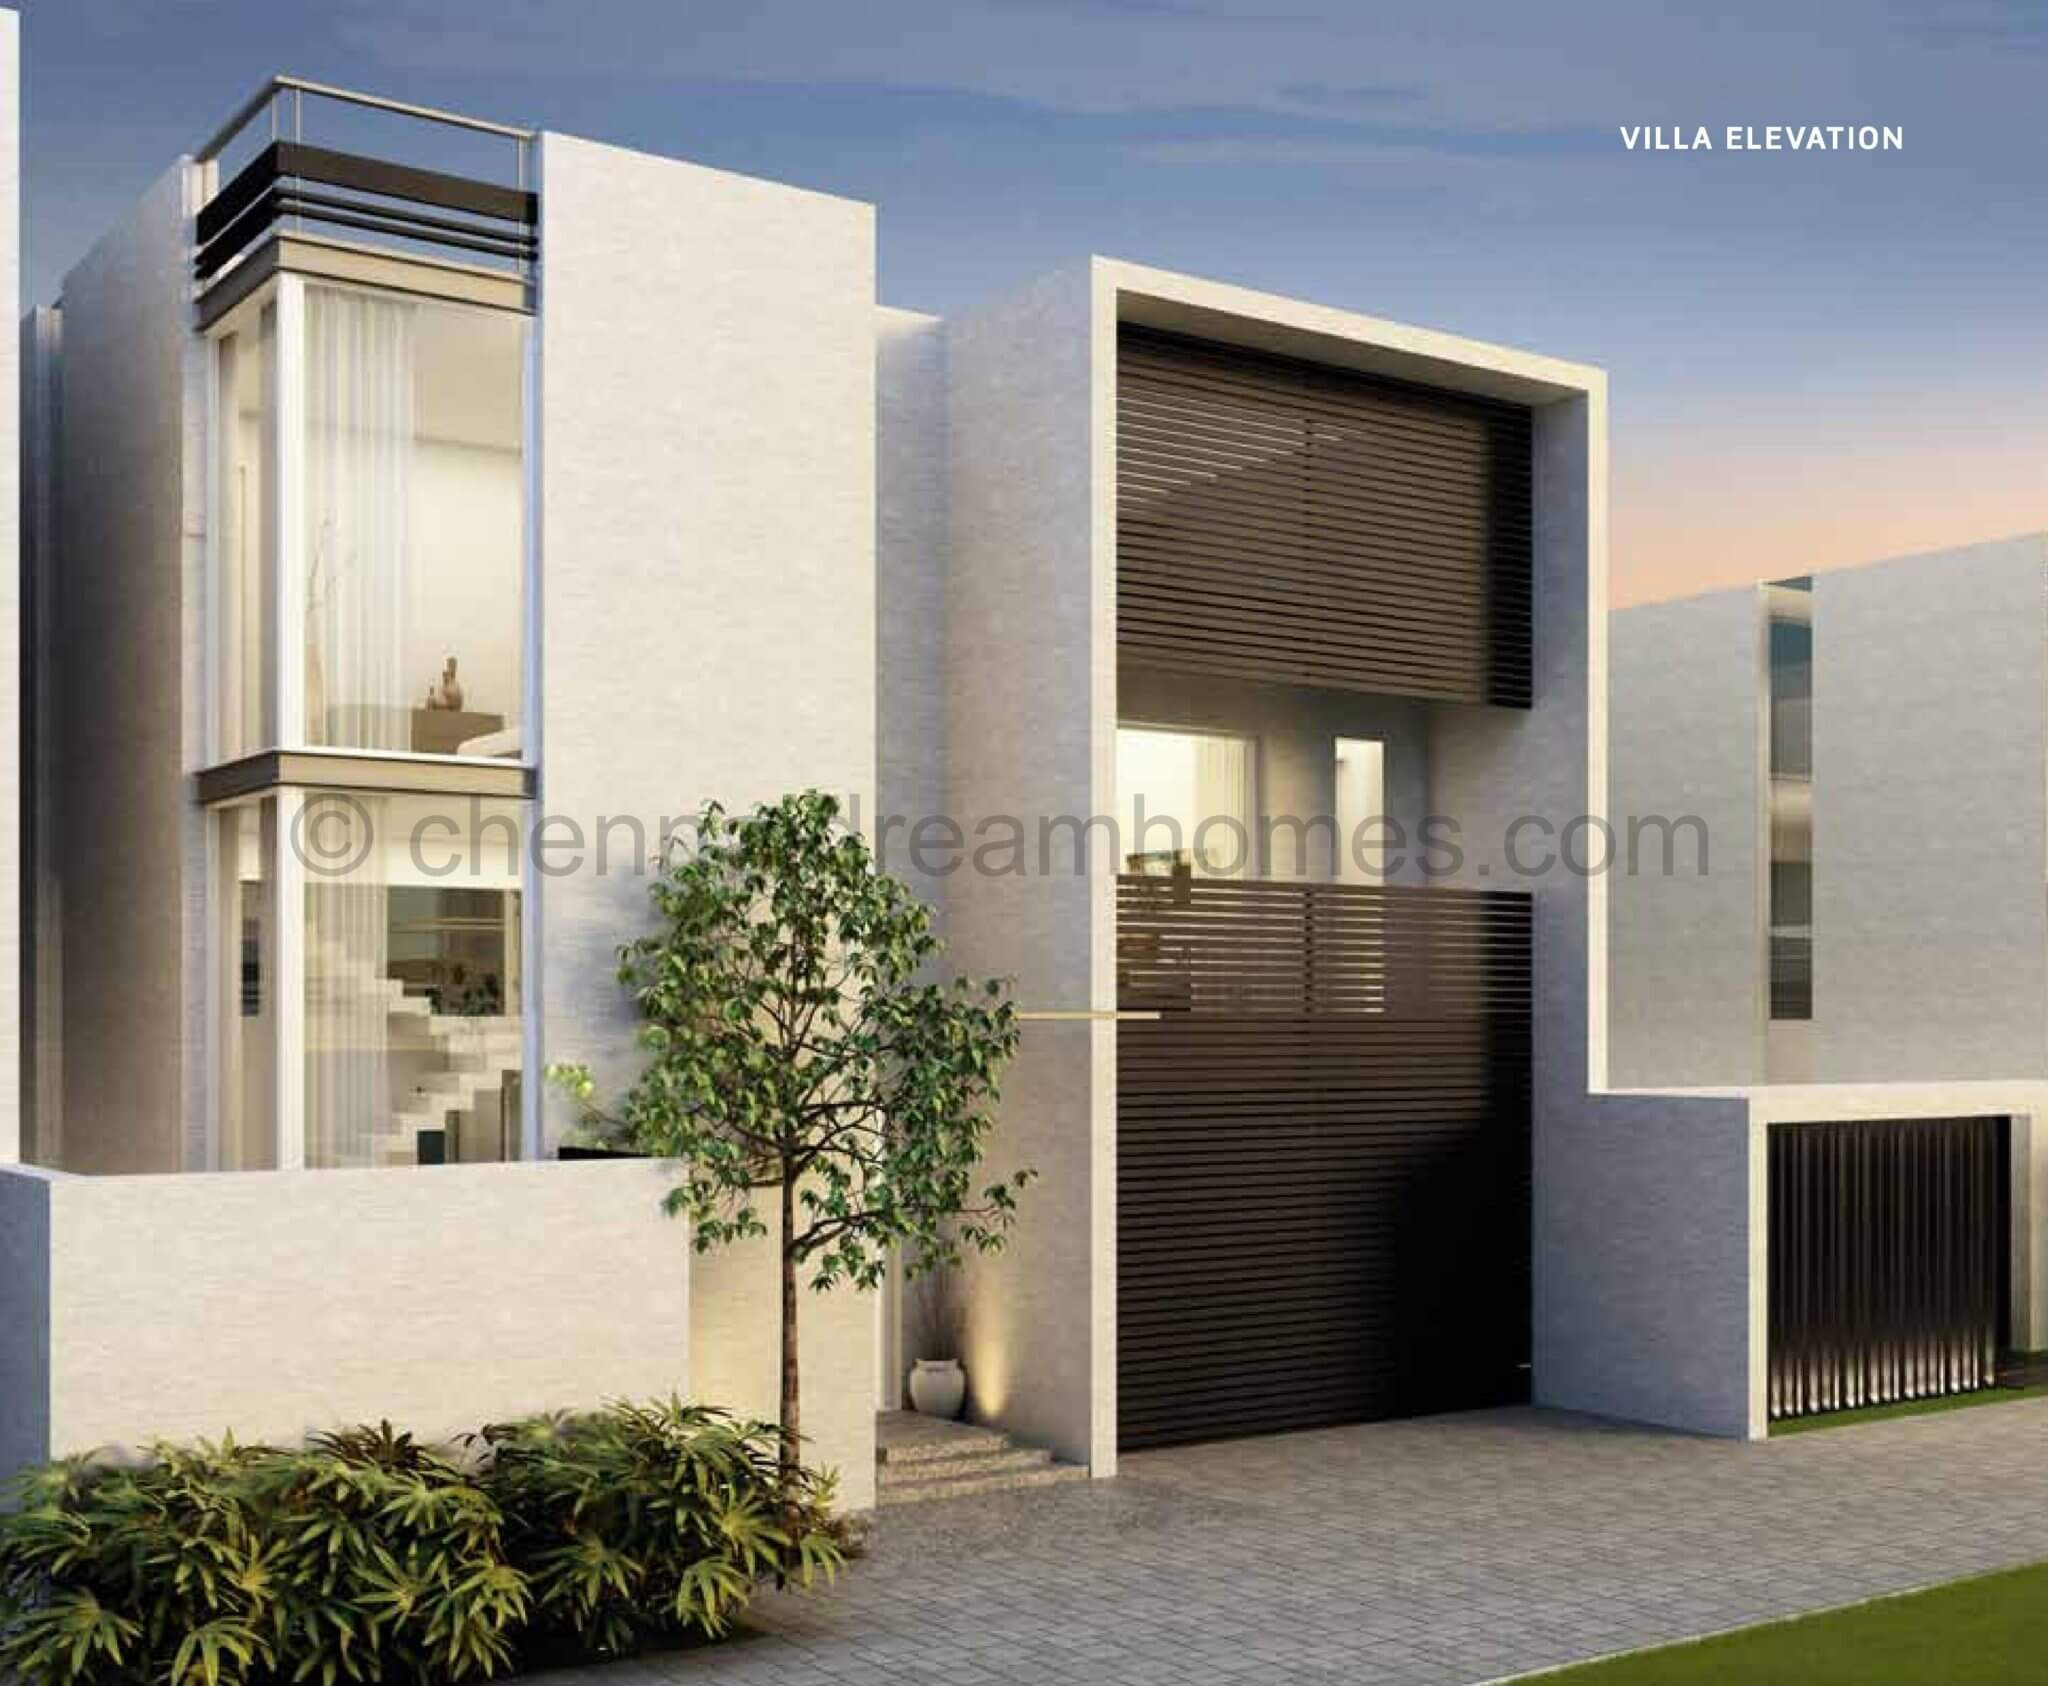 CMDA Approved 4 BHK Luxurious Villas for sale in ECR, with Pool